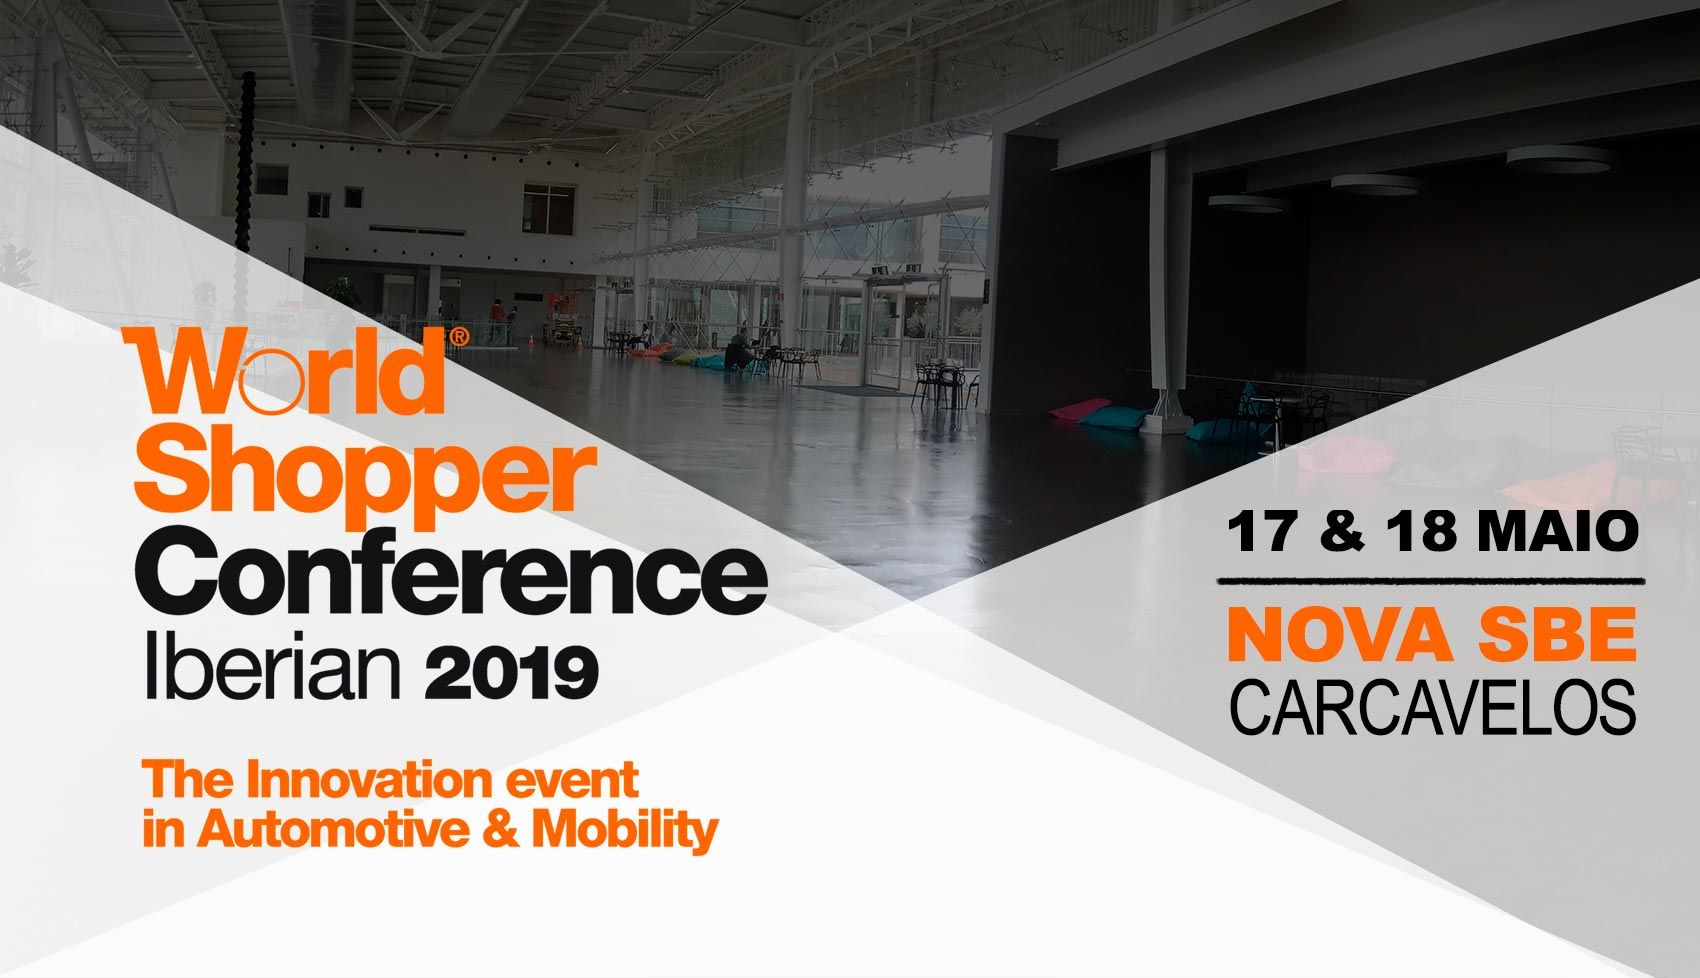 TIPS 4Y é expositor na World Shopper Conference 2019